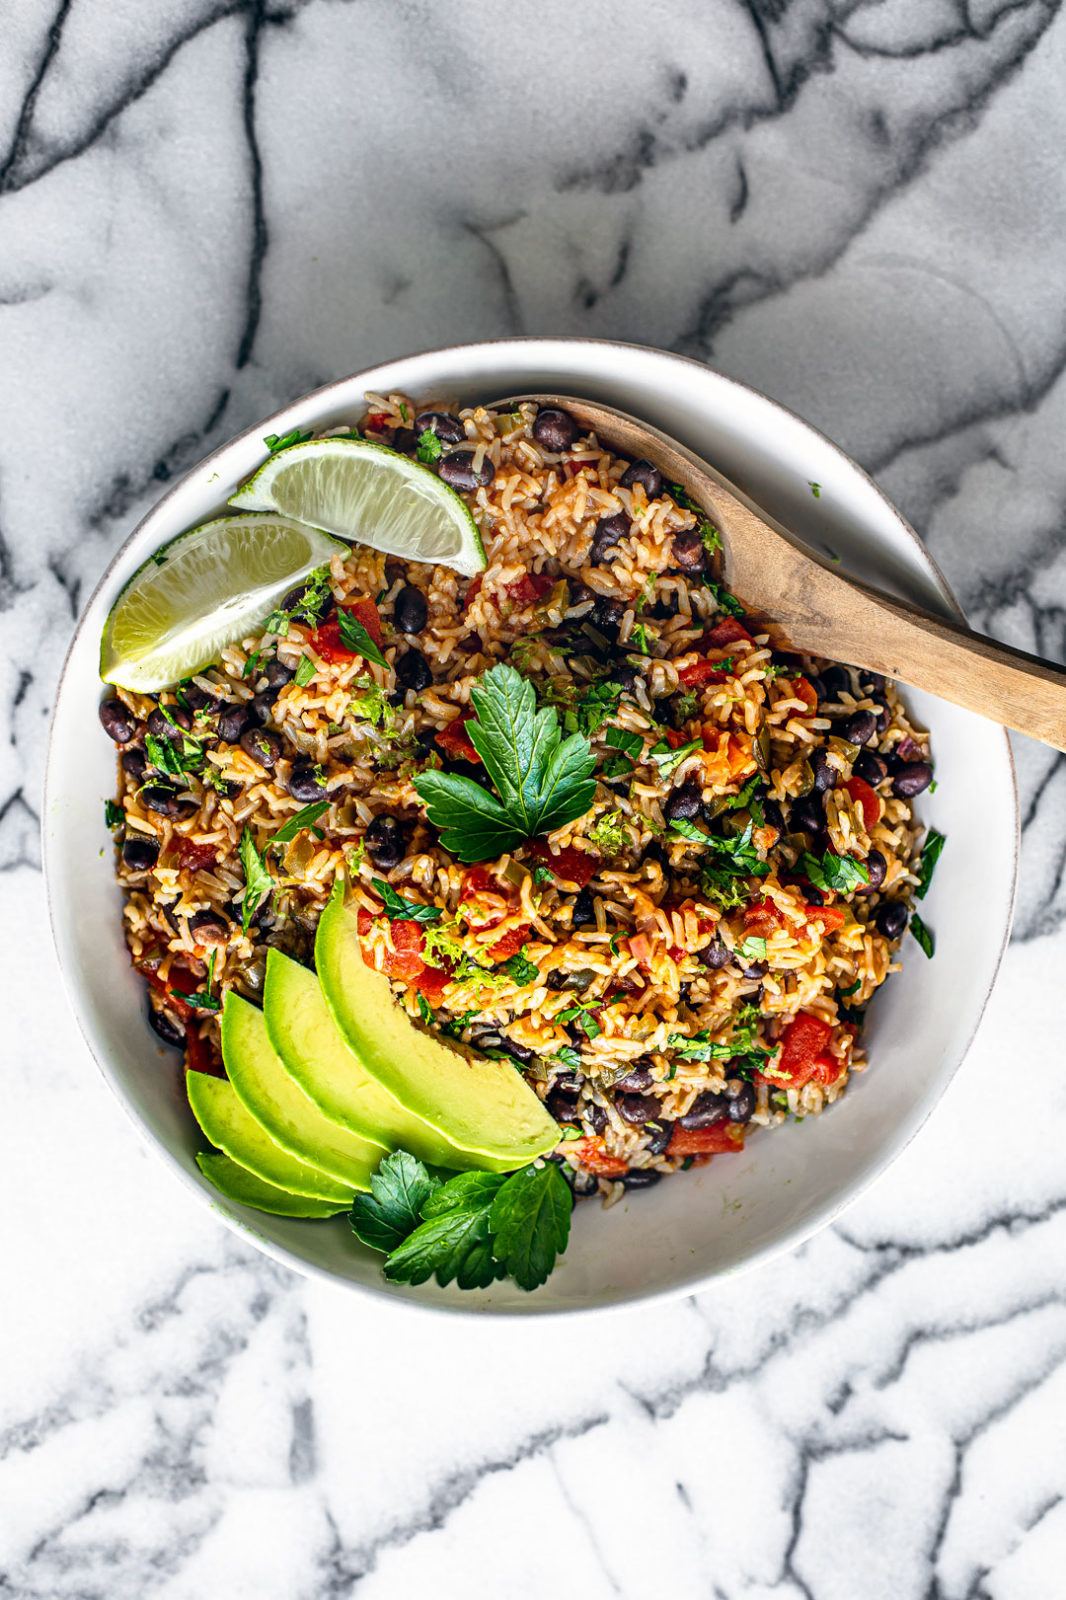 Aerial shot of serving bowl full of Instant Pot Mexican Rice garnished with fresh parsley, sliced avocado, and lime wedges.